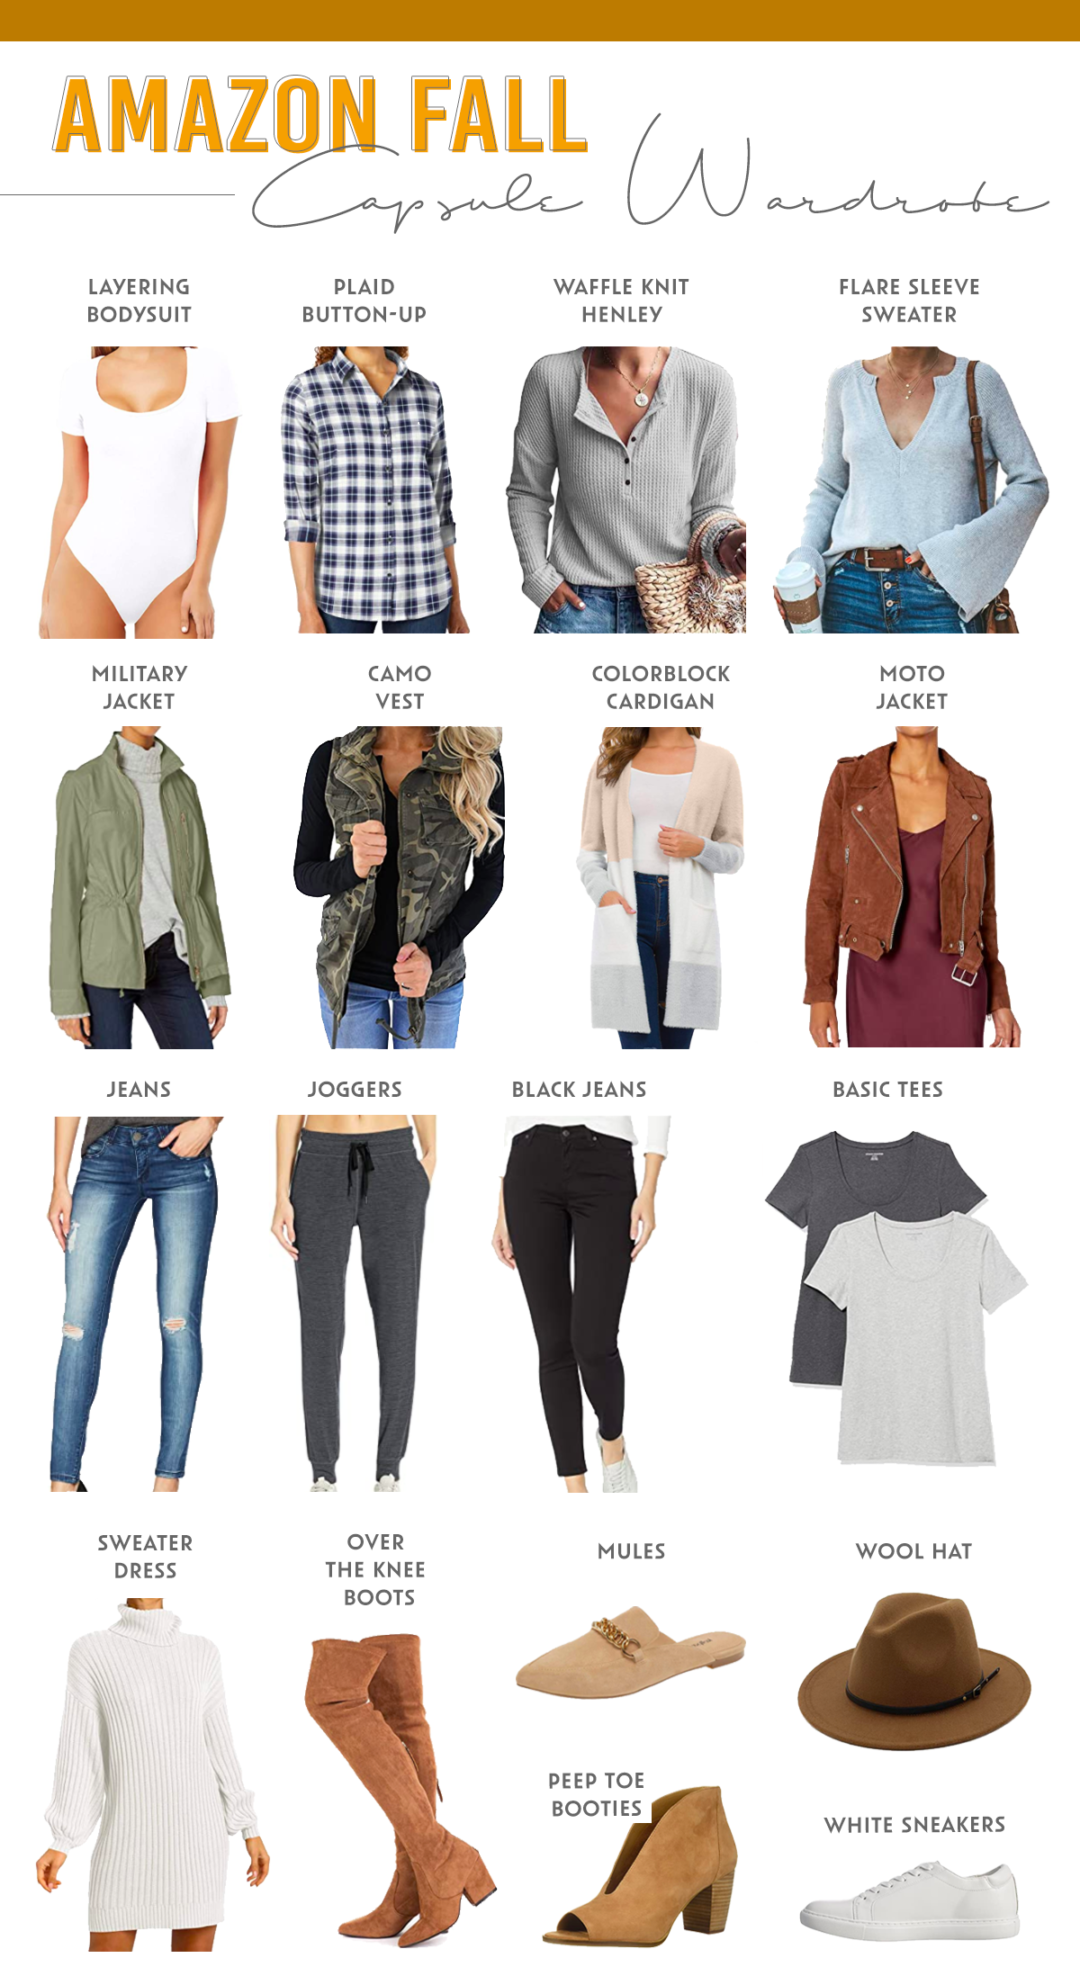 amazon fall 2020 capsule wardrobe for minimalist on pinteresting plans fashion blog